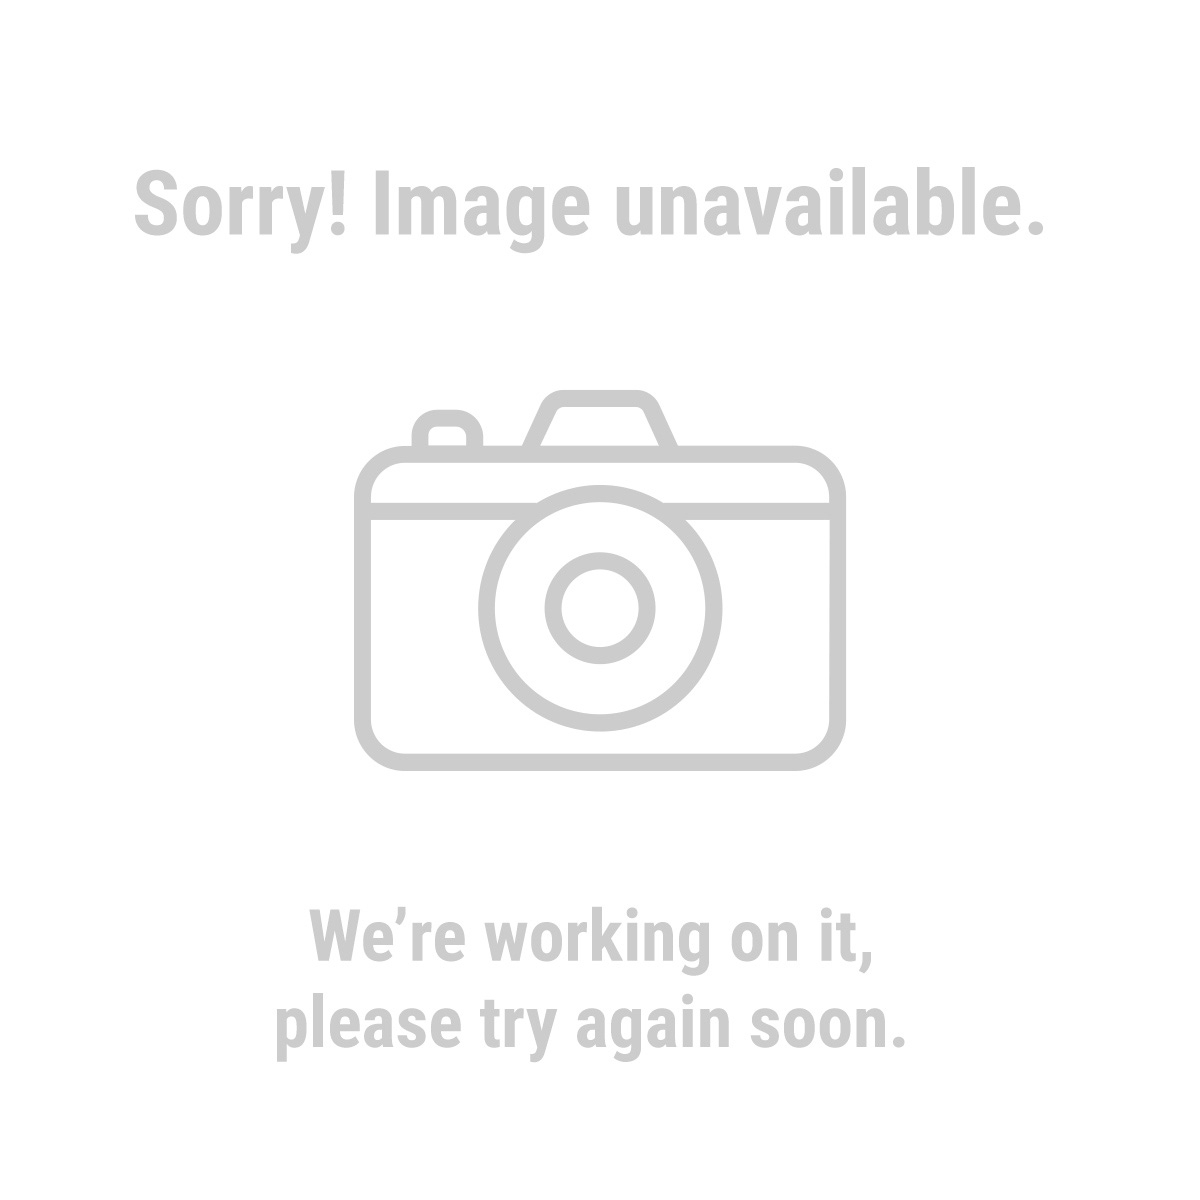 Western Safety 60737 Super Flexible Knee Pads